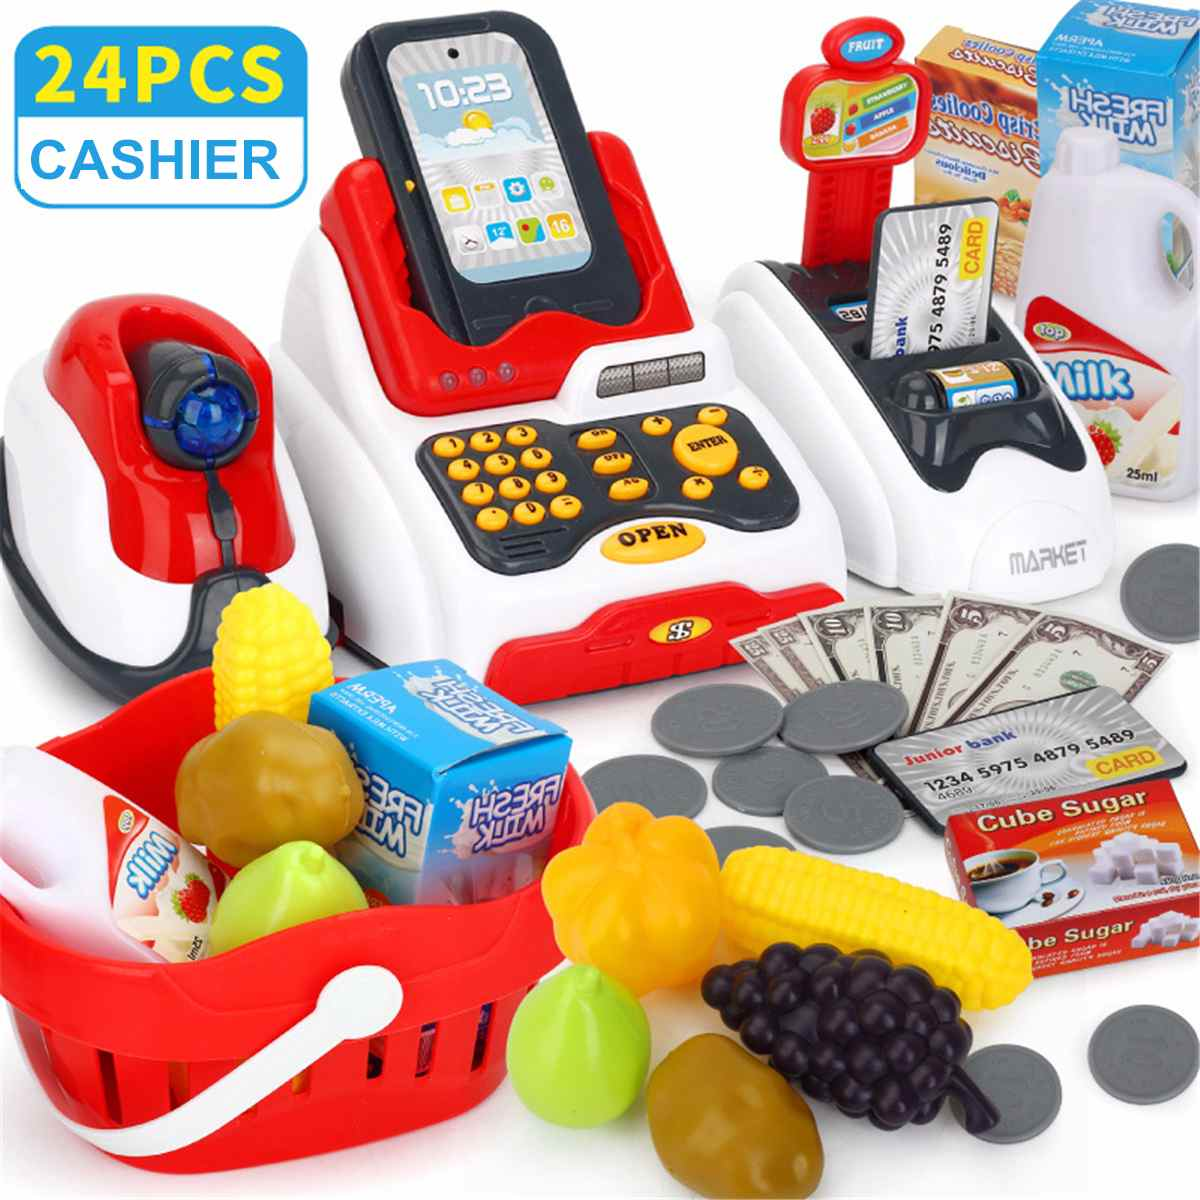 24pcs Children Learning Educational Toy Kids Cashier Pretend Play Gift Counter Cash Register Toy Simulated Model Supermarkt